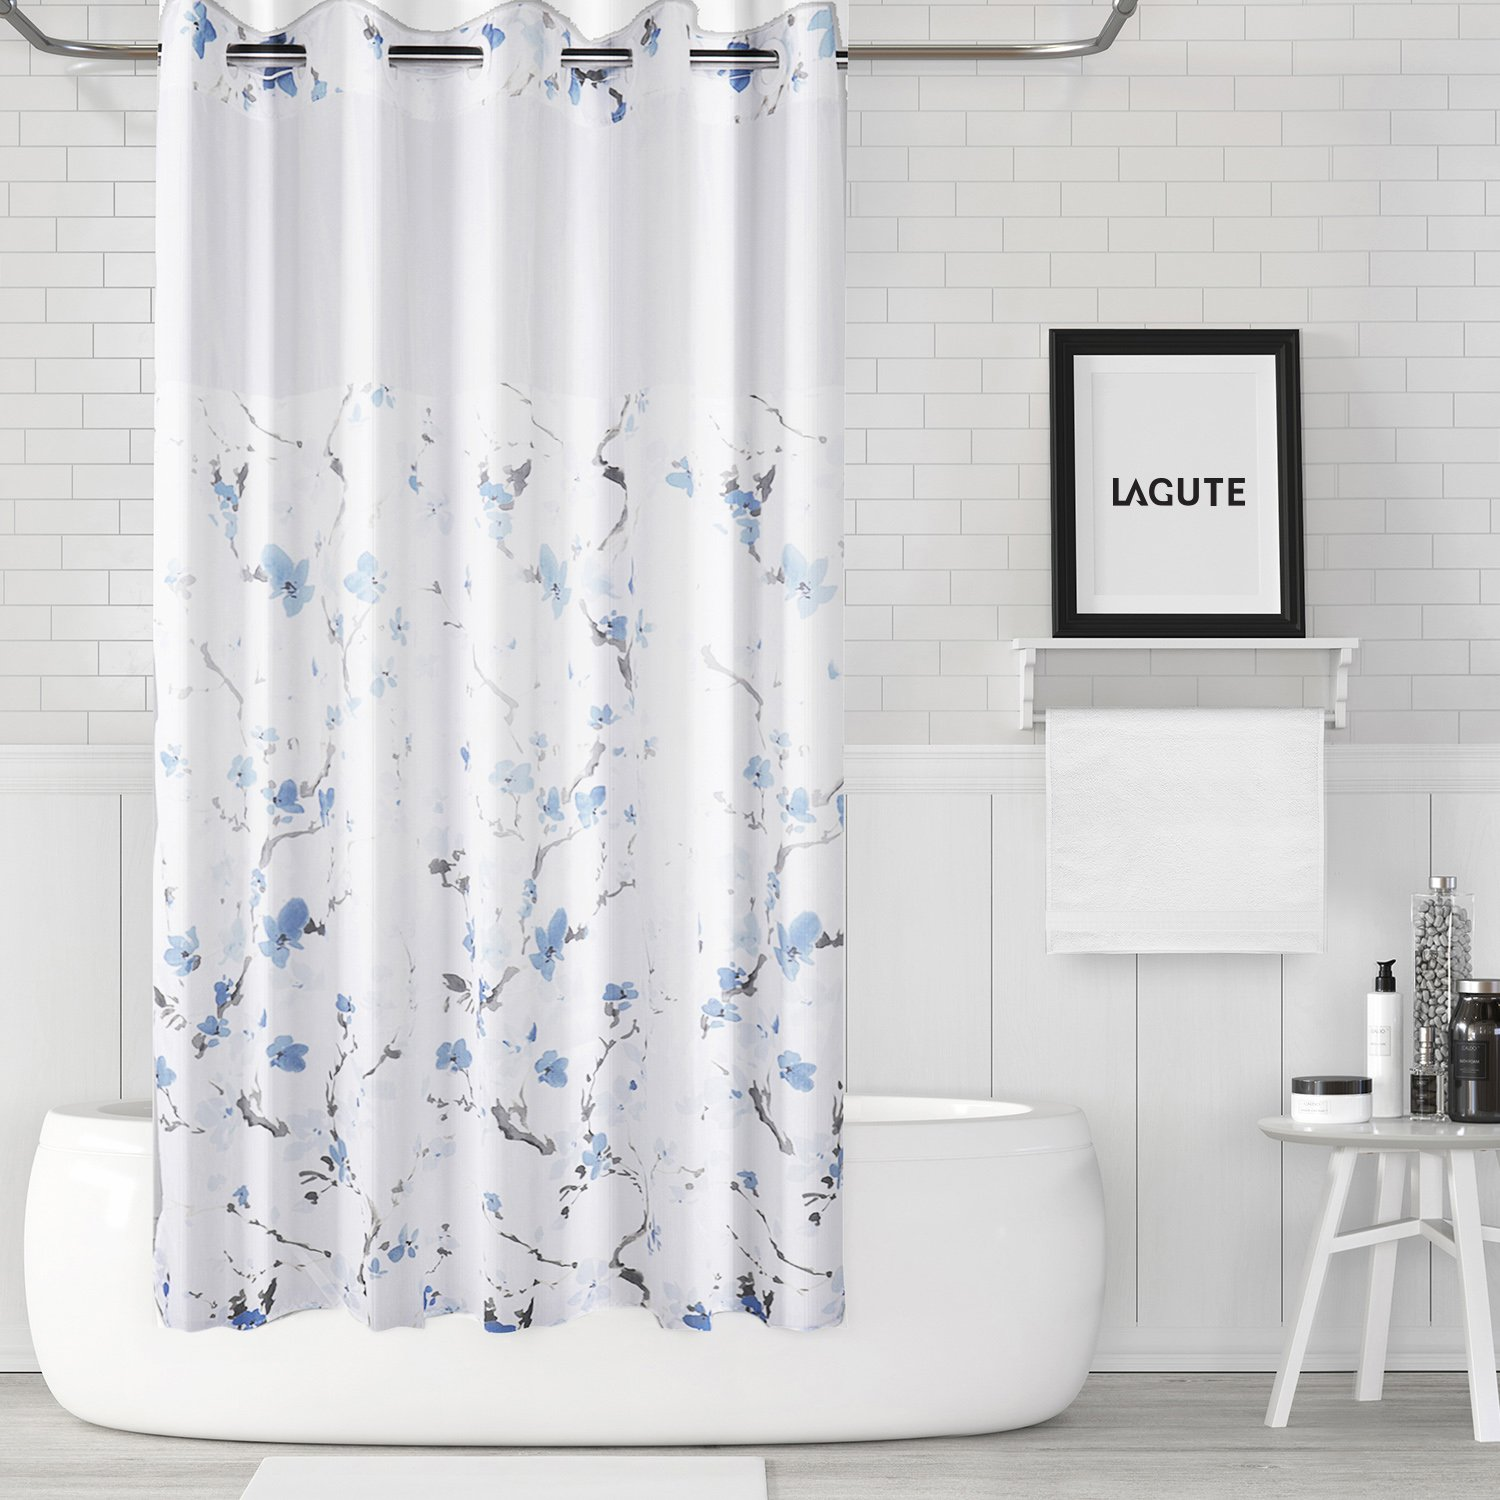 Lagute SnapHook (Hookless) Shower Curtain w/Snap-in Liner | Bathroom Curtain with Removable PEVA Liner [71''x74''] | Translucent See-Through Window, Waterproof and Anti-Mold Polyester Bathtub Curtain